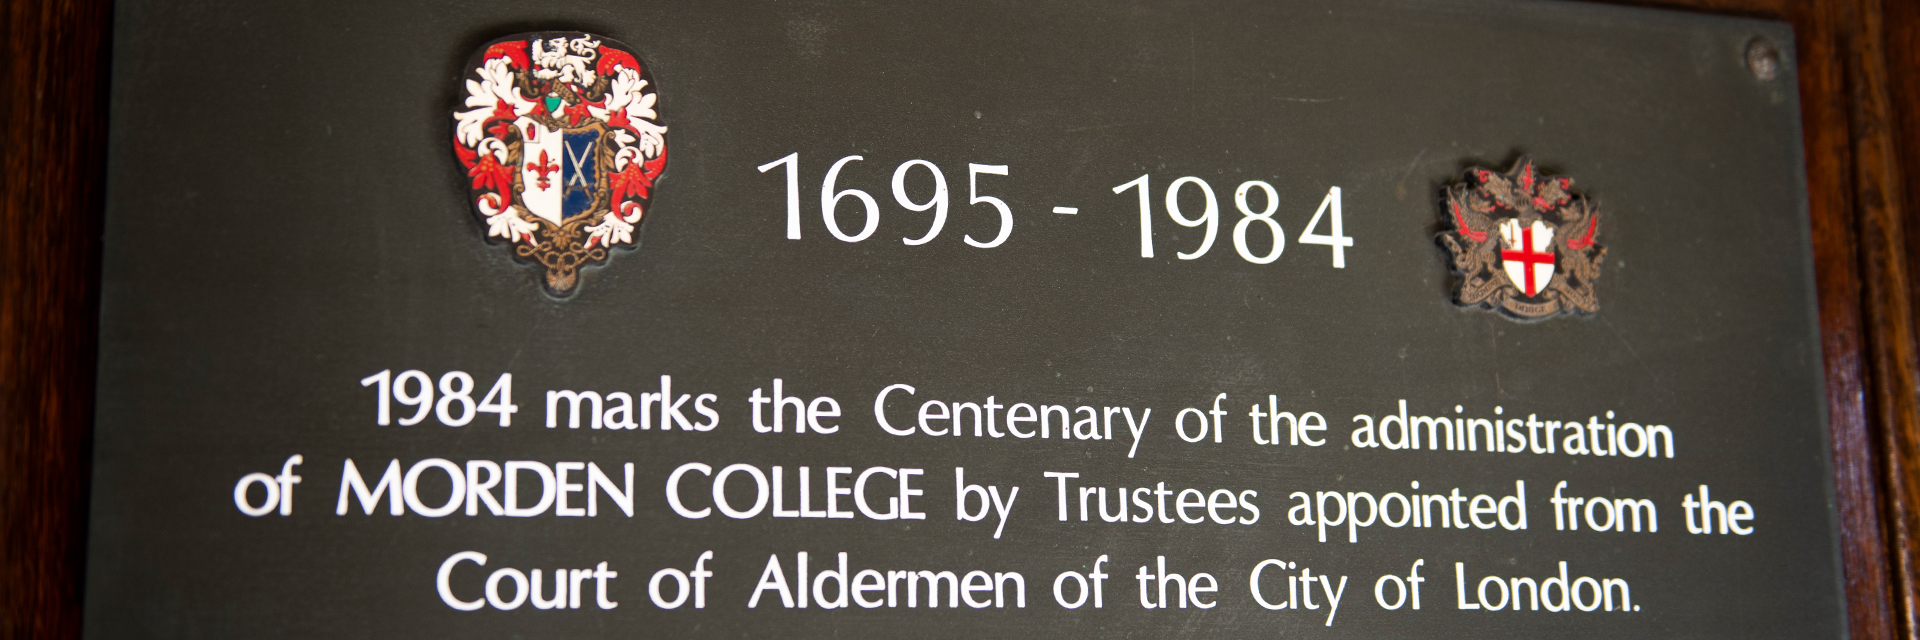 Morden-College-header-Trustees1